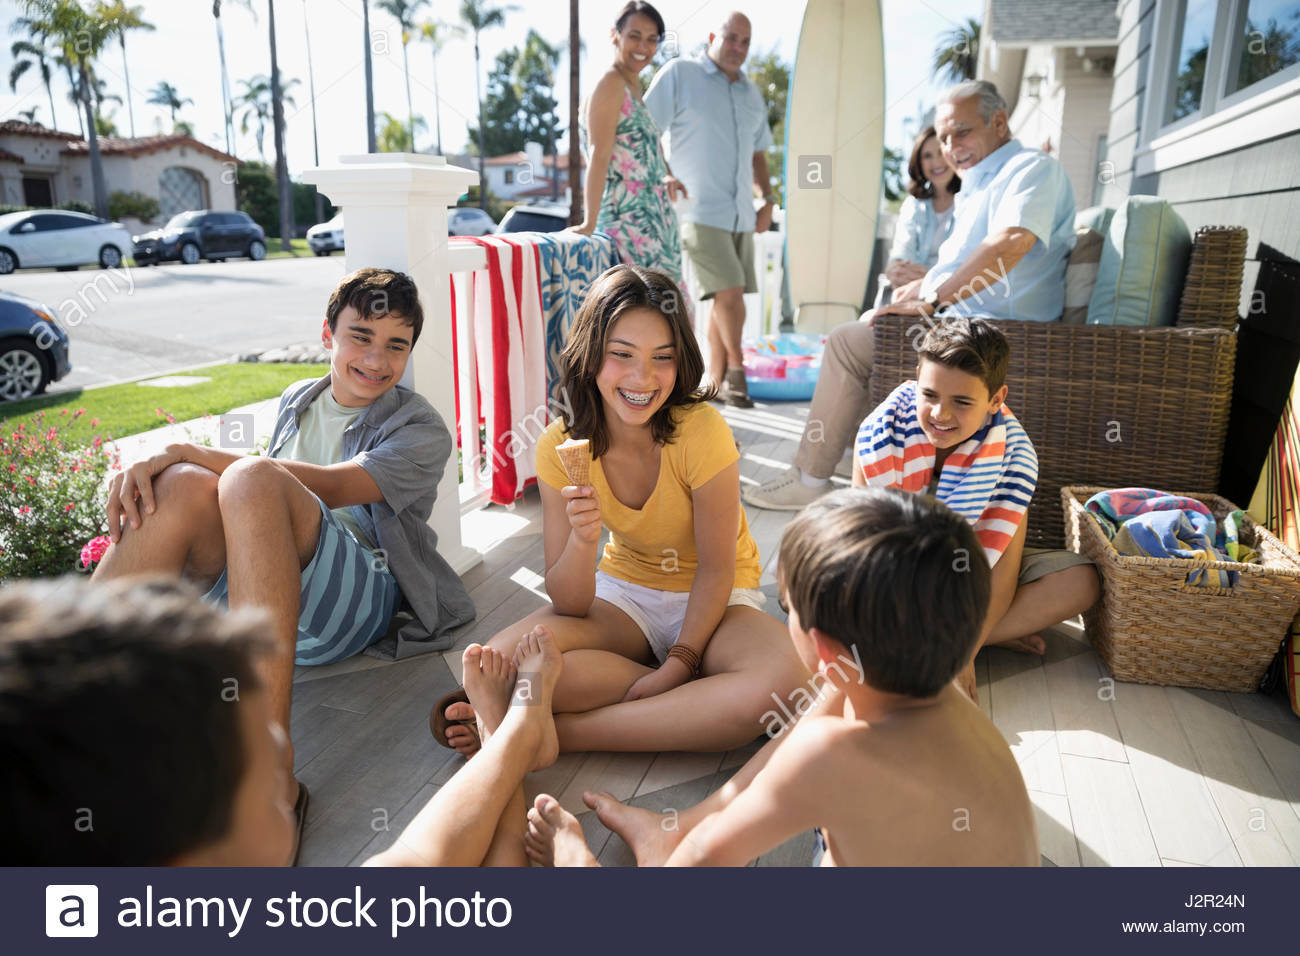 Brothers and sister eating ice cream cone on summer beach house porch - Stock Image